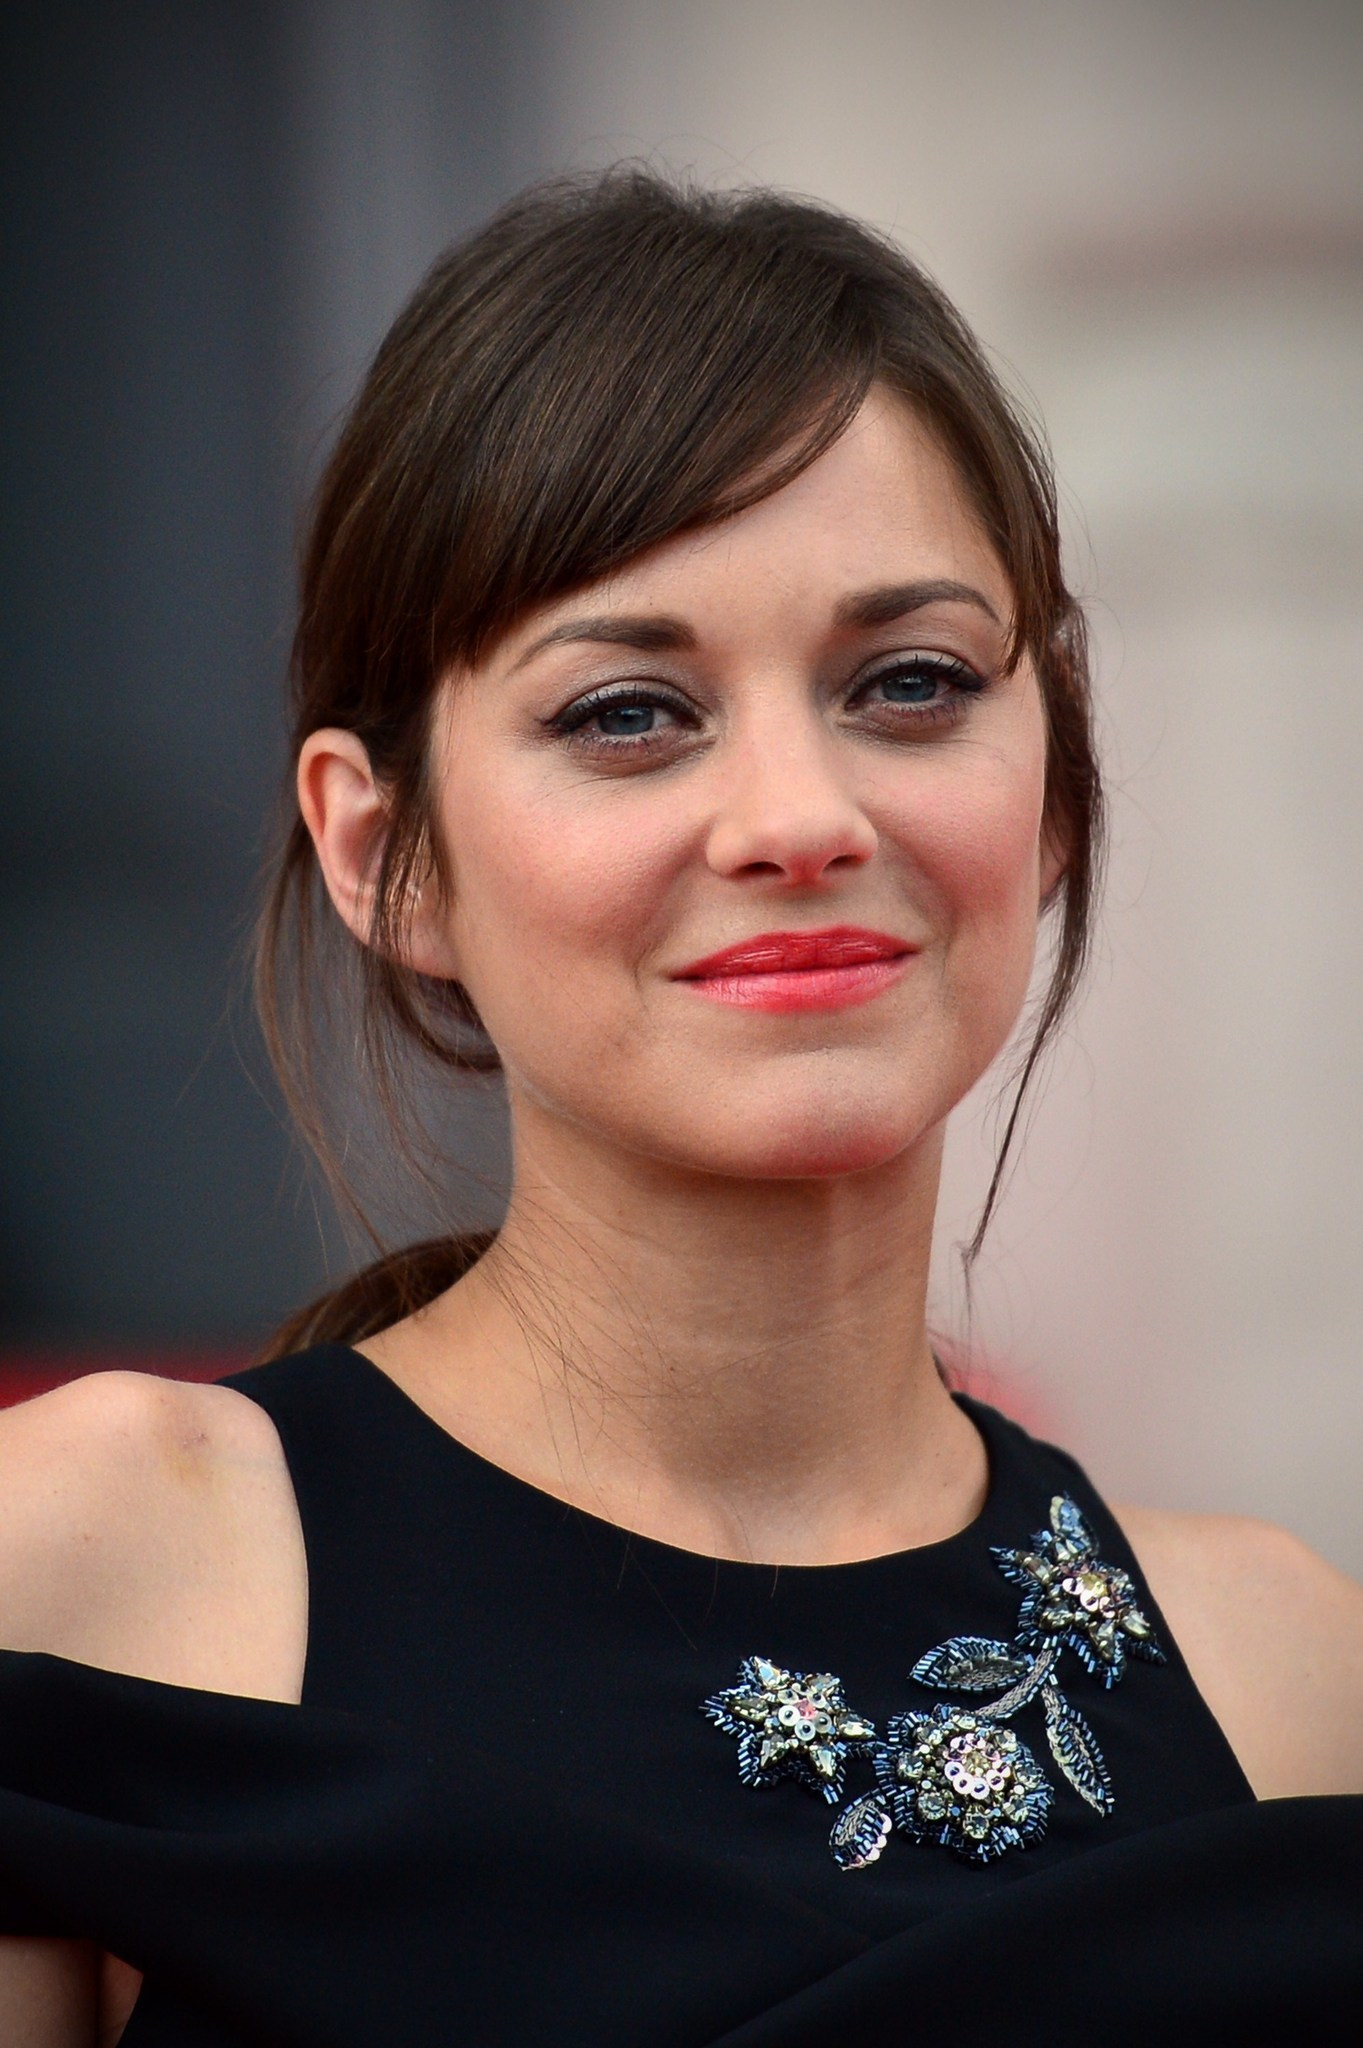 Oscars 2015: Marion Cotillard a surprise in lead actress ... Marion Cotillard